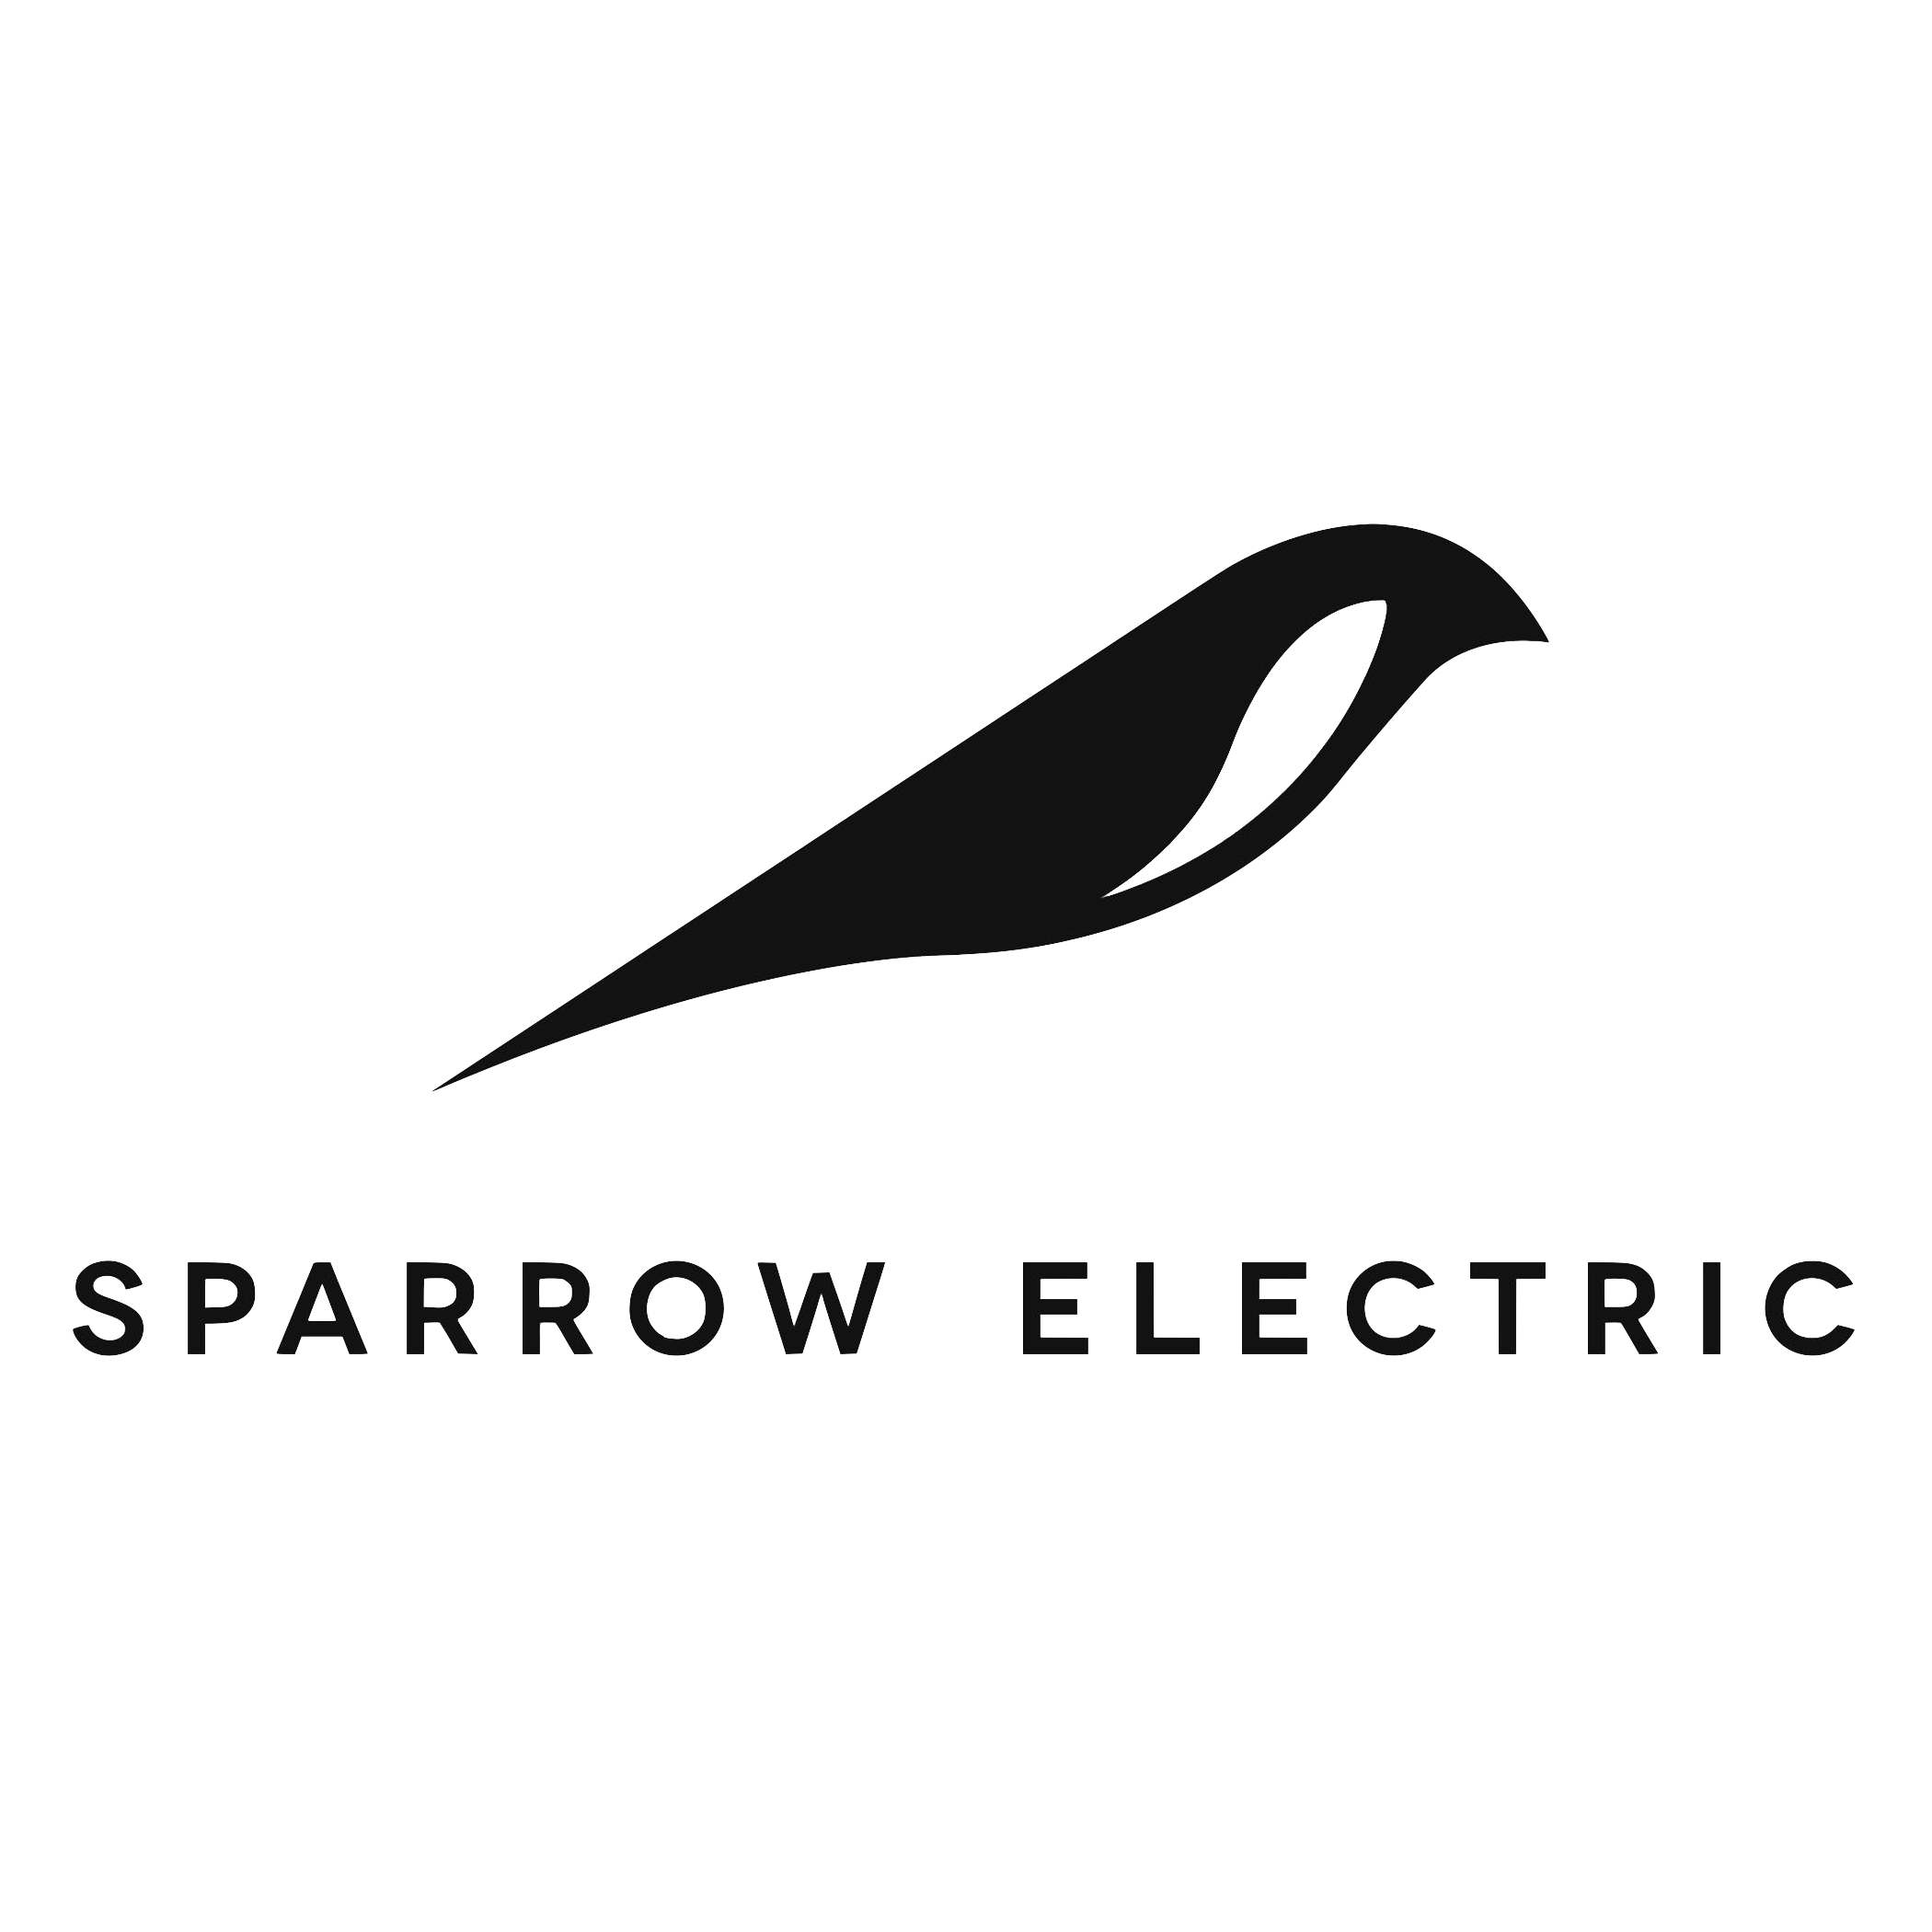 High Res Sparrow.png